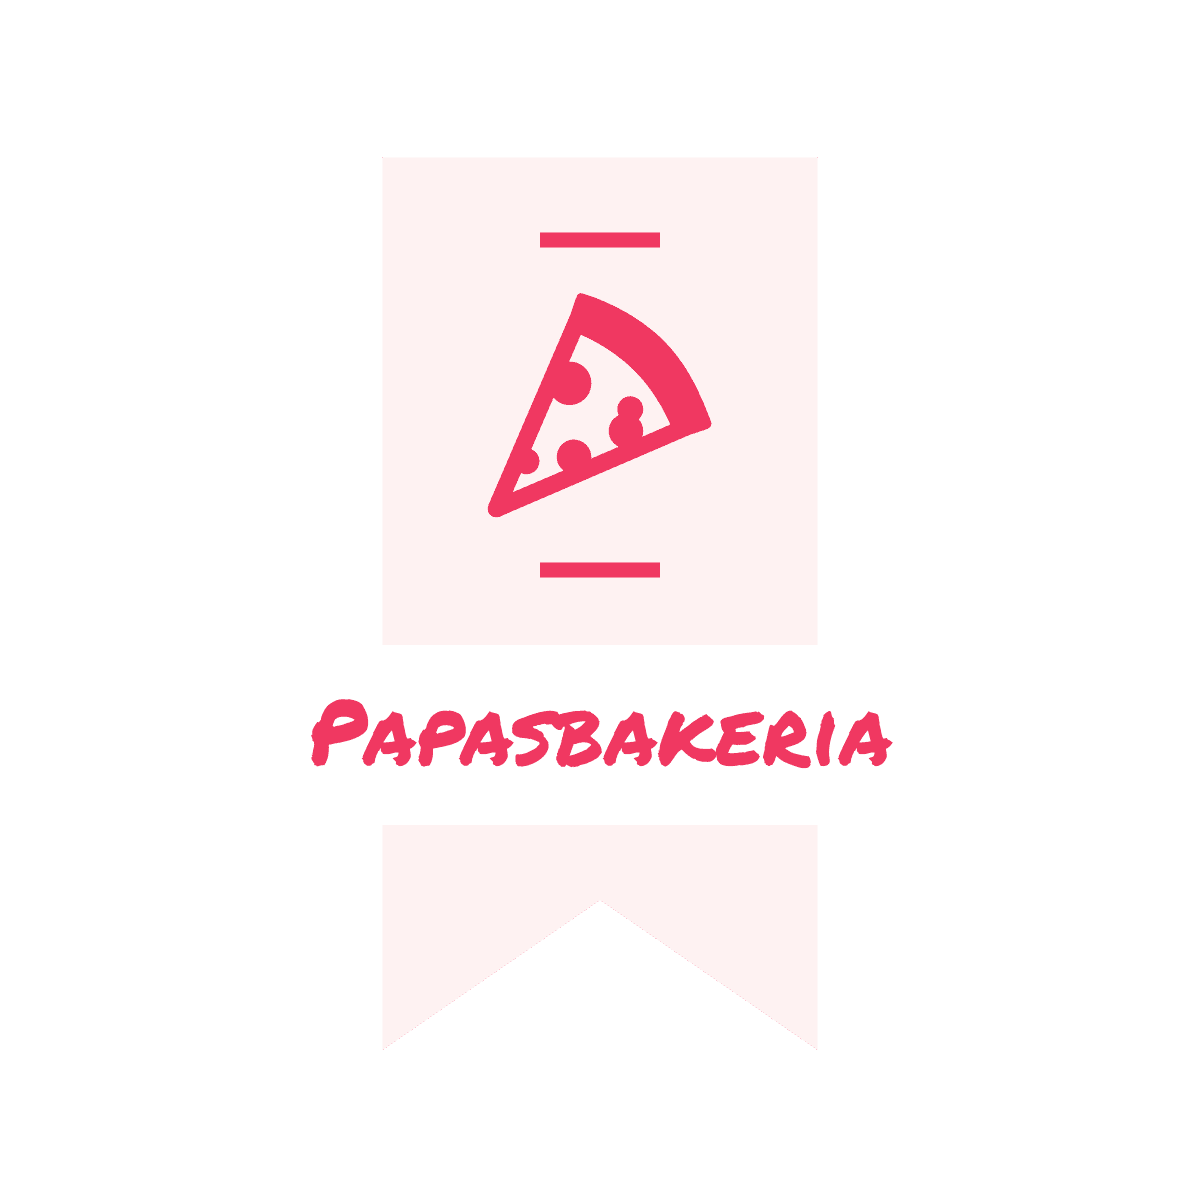 Papasbakeria